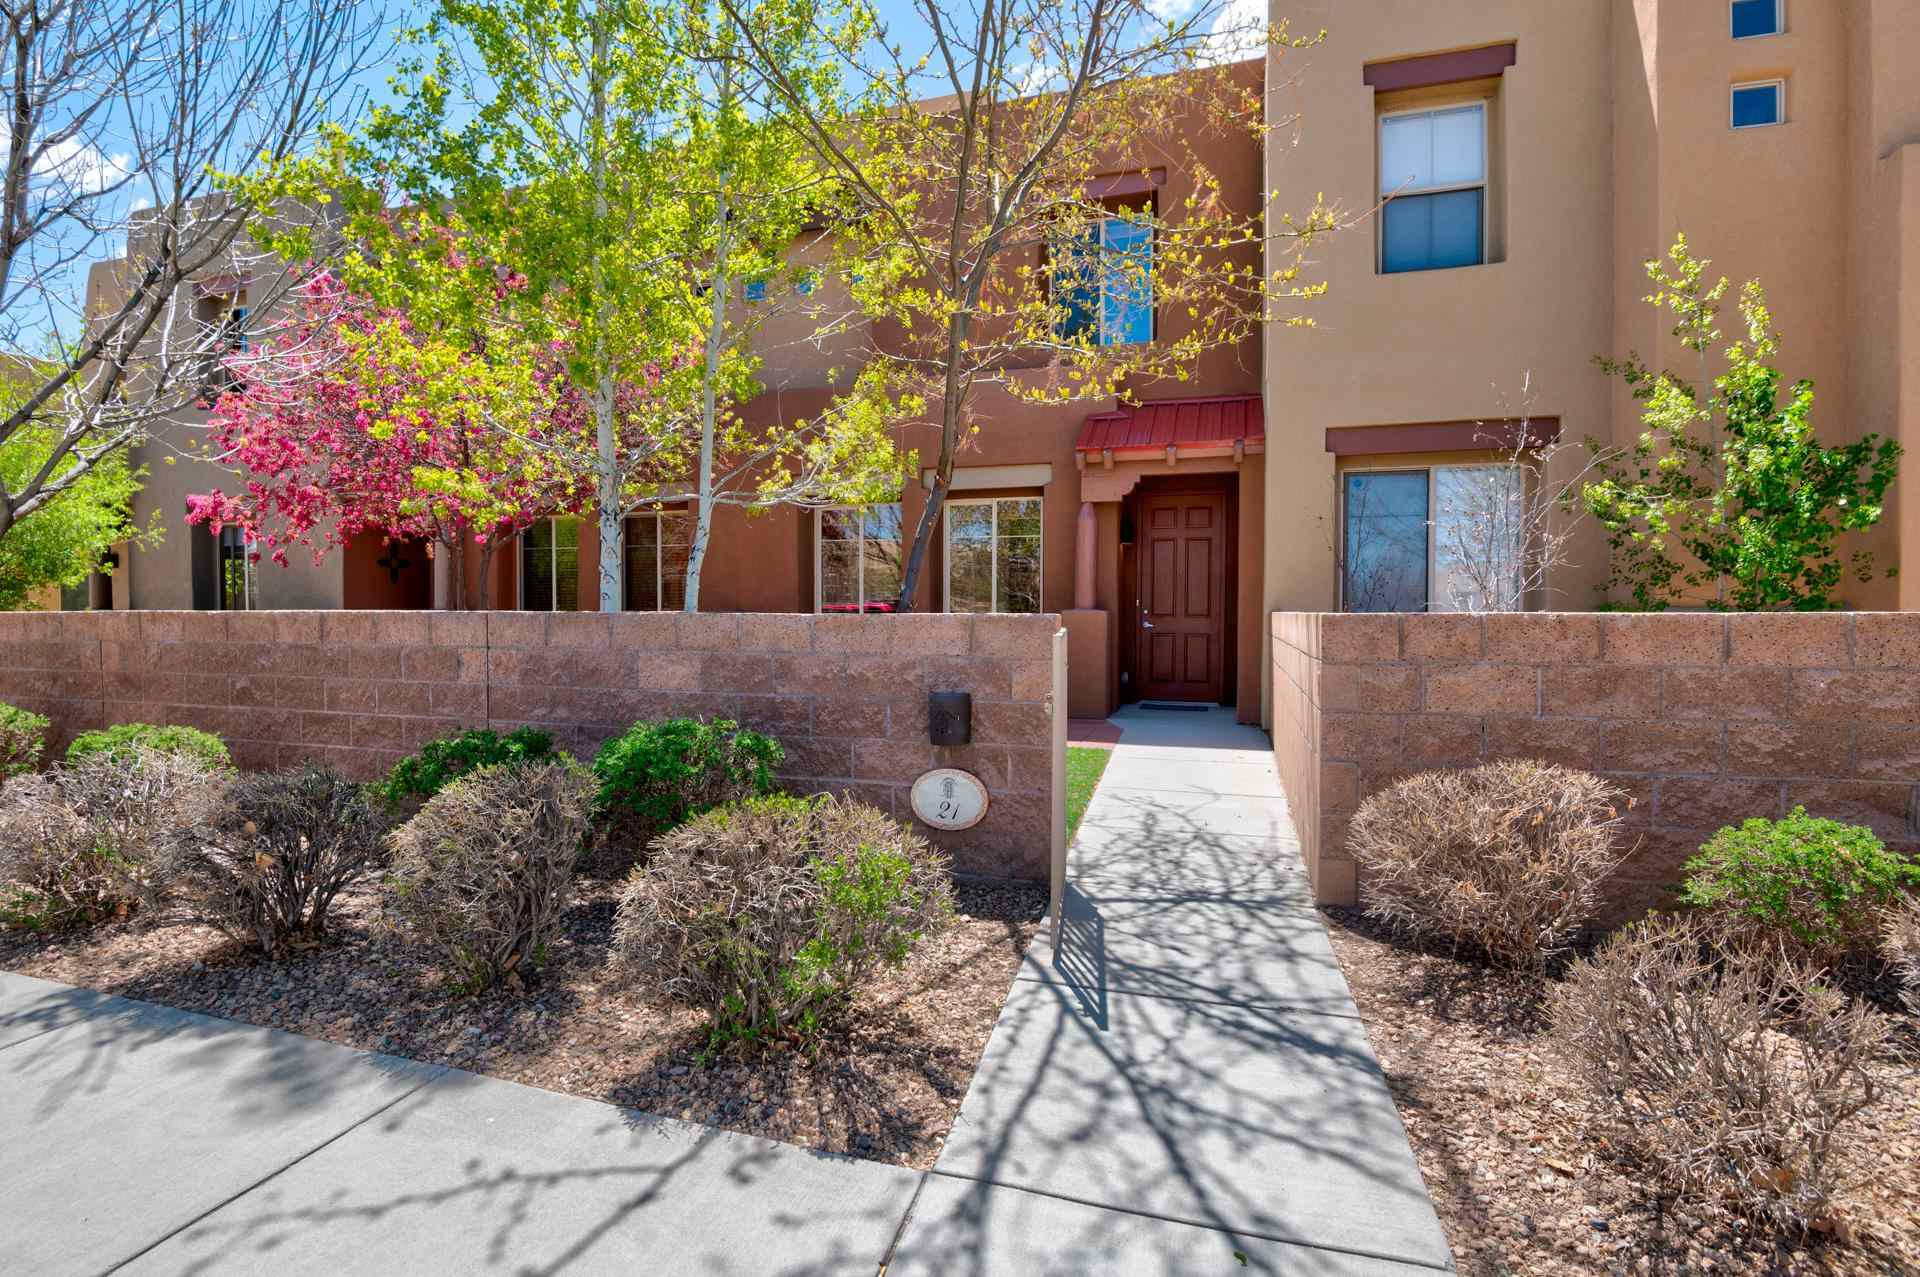 The lovely townhome is light and bright with open living, dining, and kitchen areas on the main level with views out to the landscaped front court yard, bordering the community park. The spacious upper level has a guest bedroom and master bedroom suite that includes a deck and views of the Sangre de Cristos.  Warmth and a welcoming design create the ultimate livable space with a flowing floor plan and functionality. Schedule your showing today!